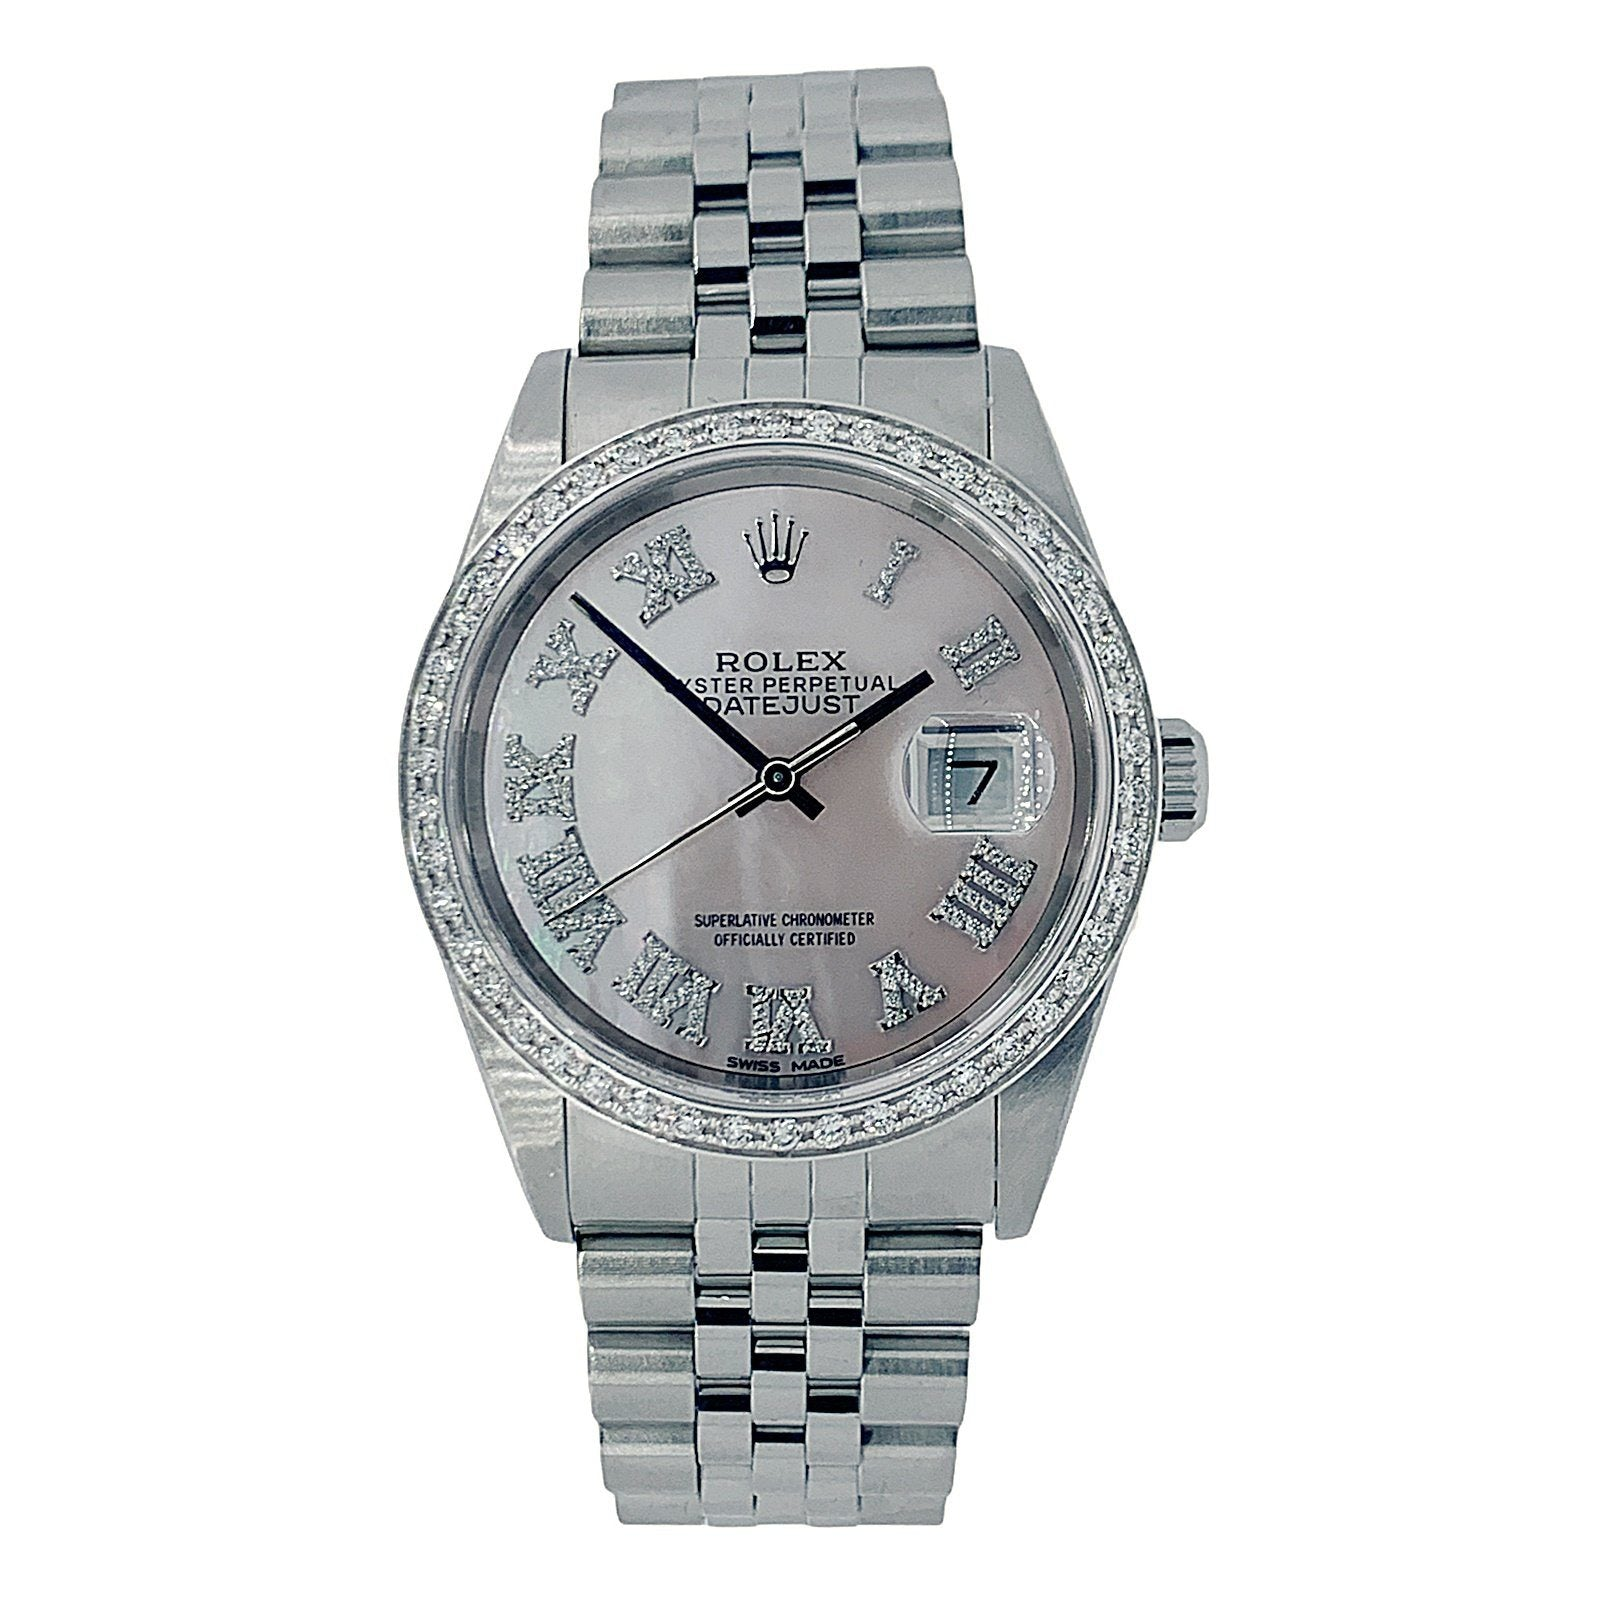 Rolex Datejust 36mm 2000 - 16234